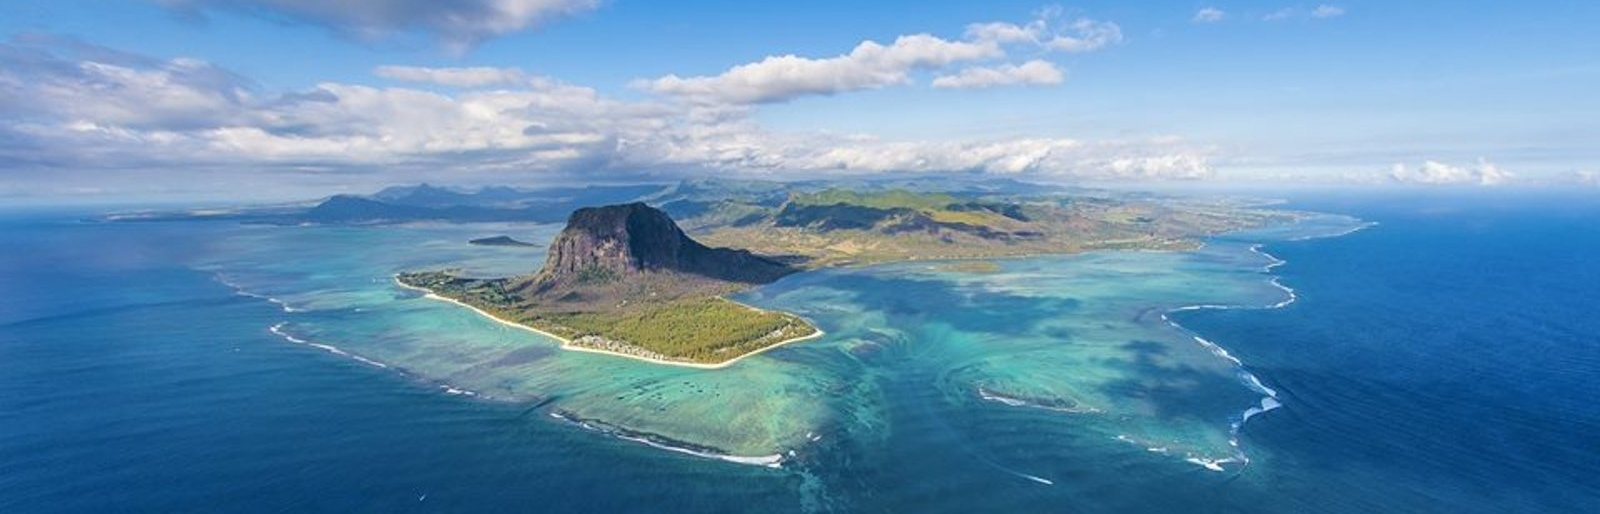 Honeymoon Heaven in Mauritius